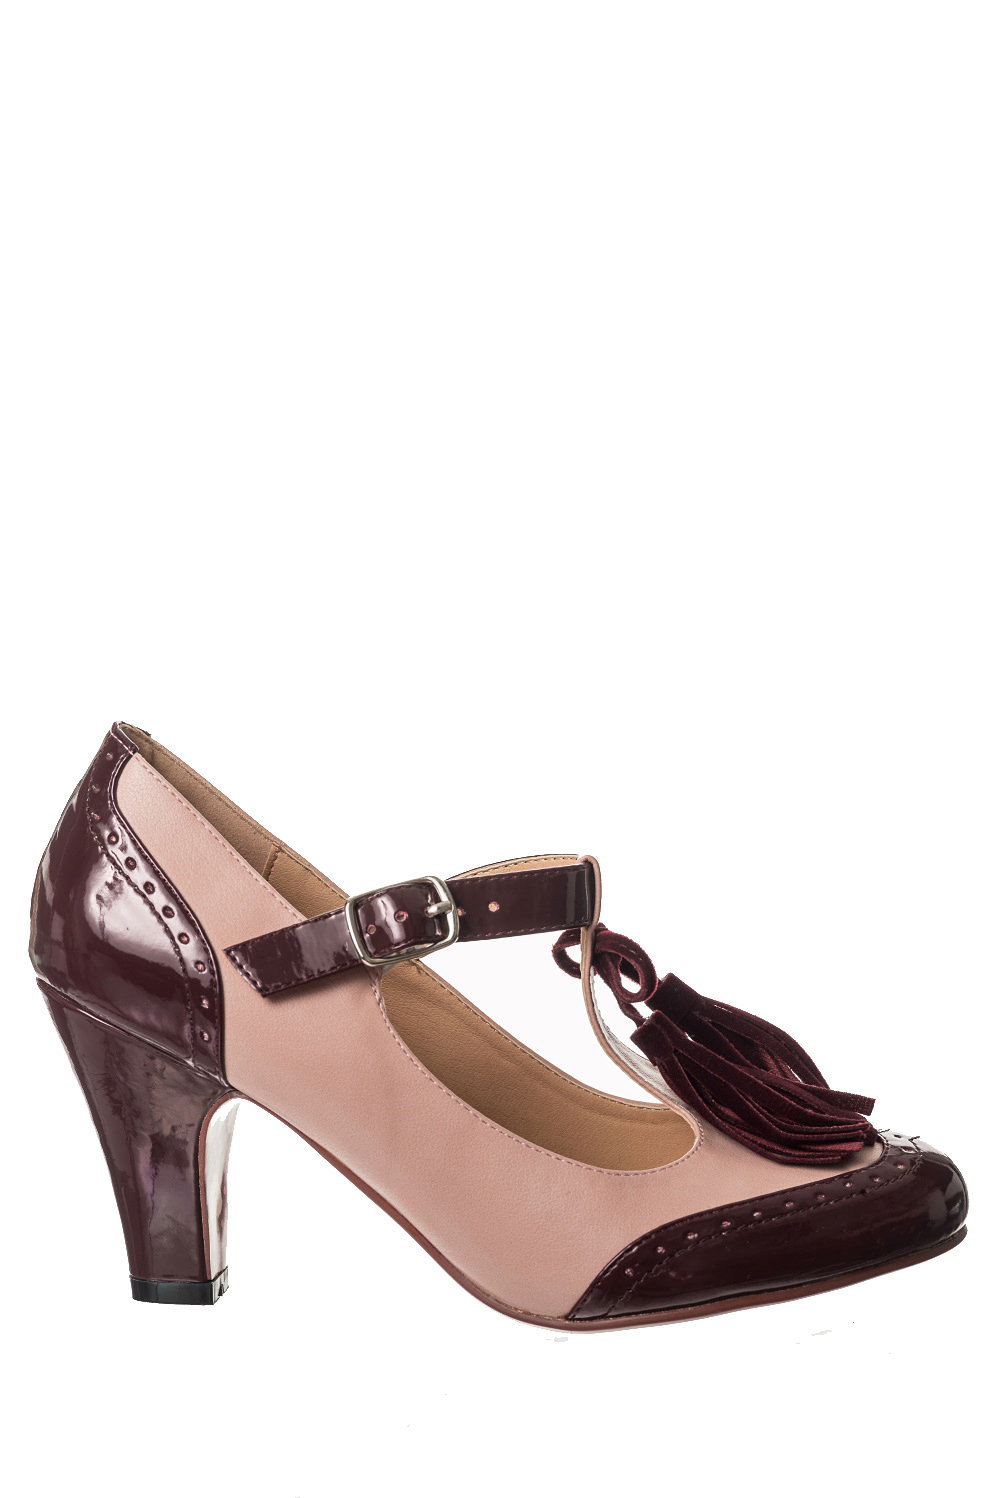 Dancing Days Baby Loves That Way 60s Burgundy Brogue Shoes